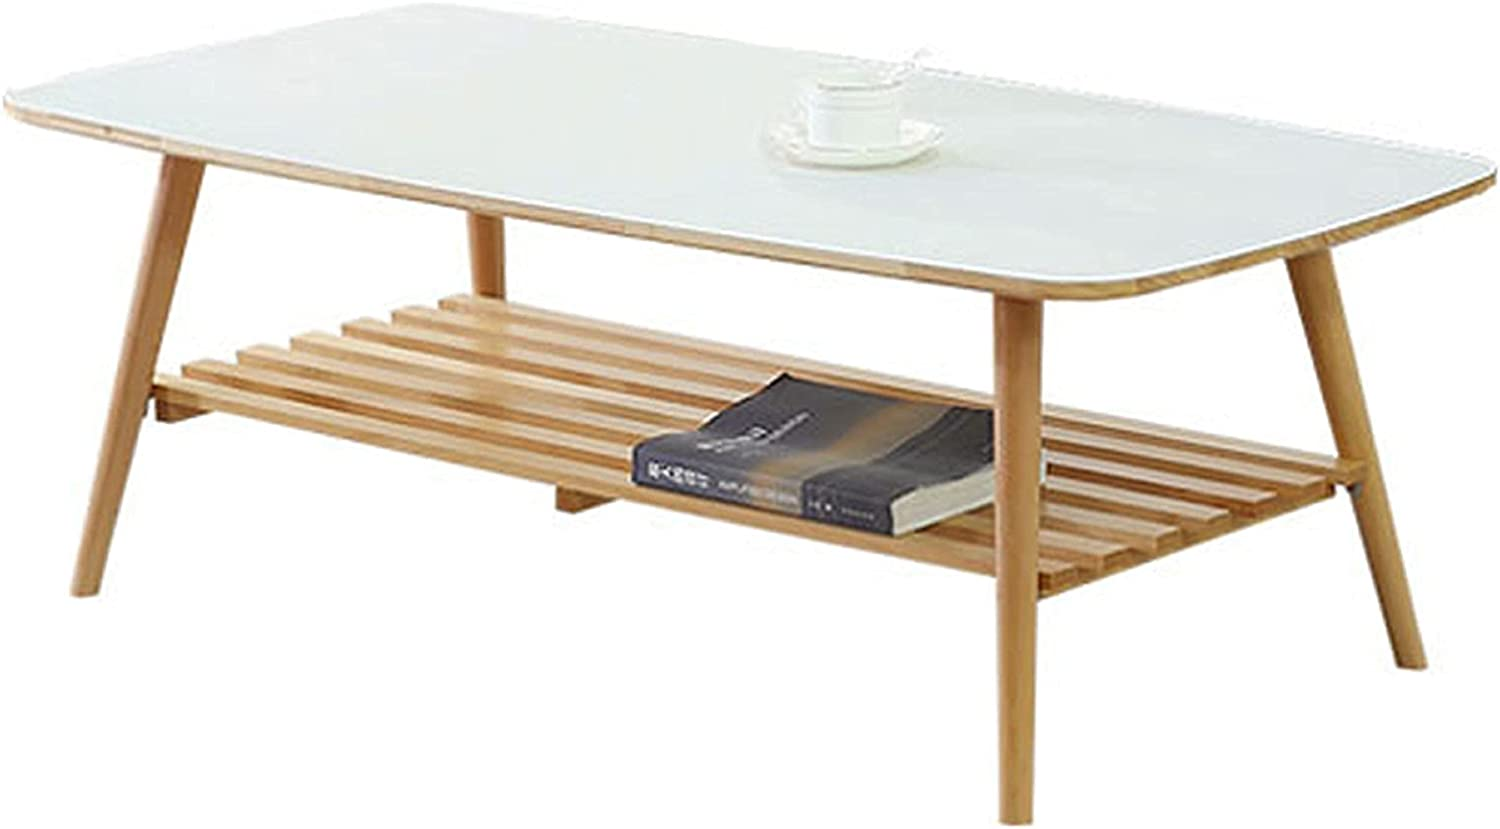 WUDAXIAN New product! New type Ranking TOP5 Double Layer Solid Wood with Large Shelve Table Coffee